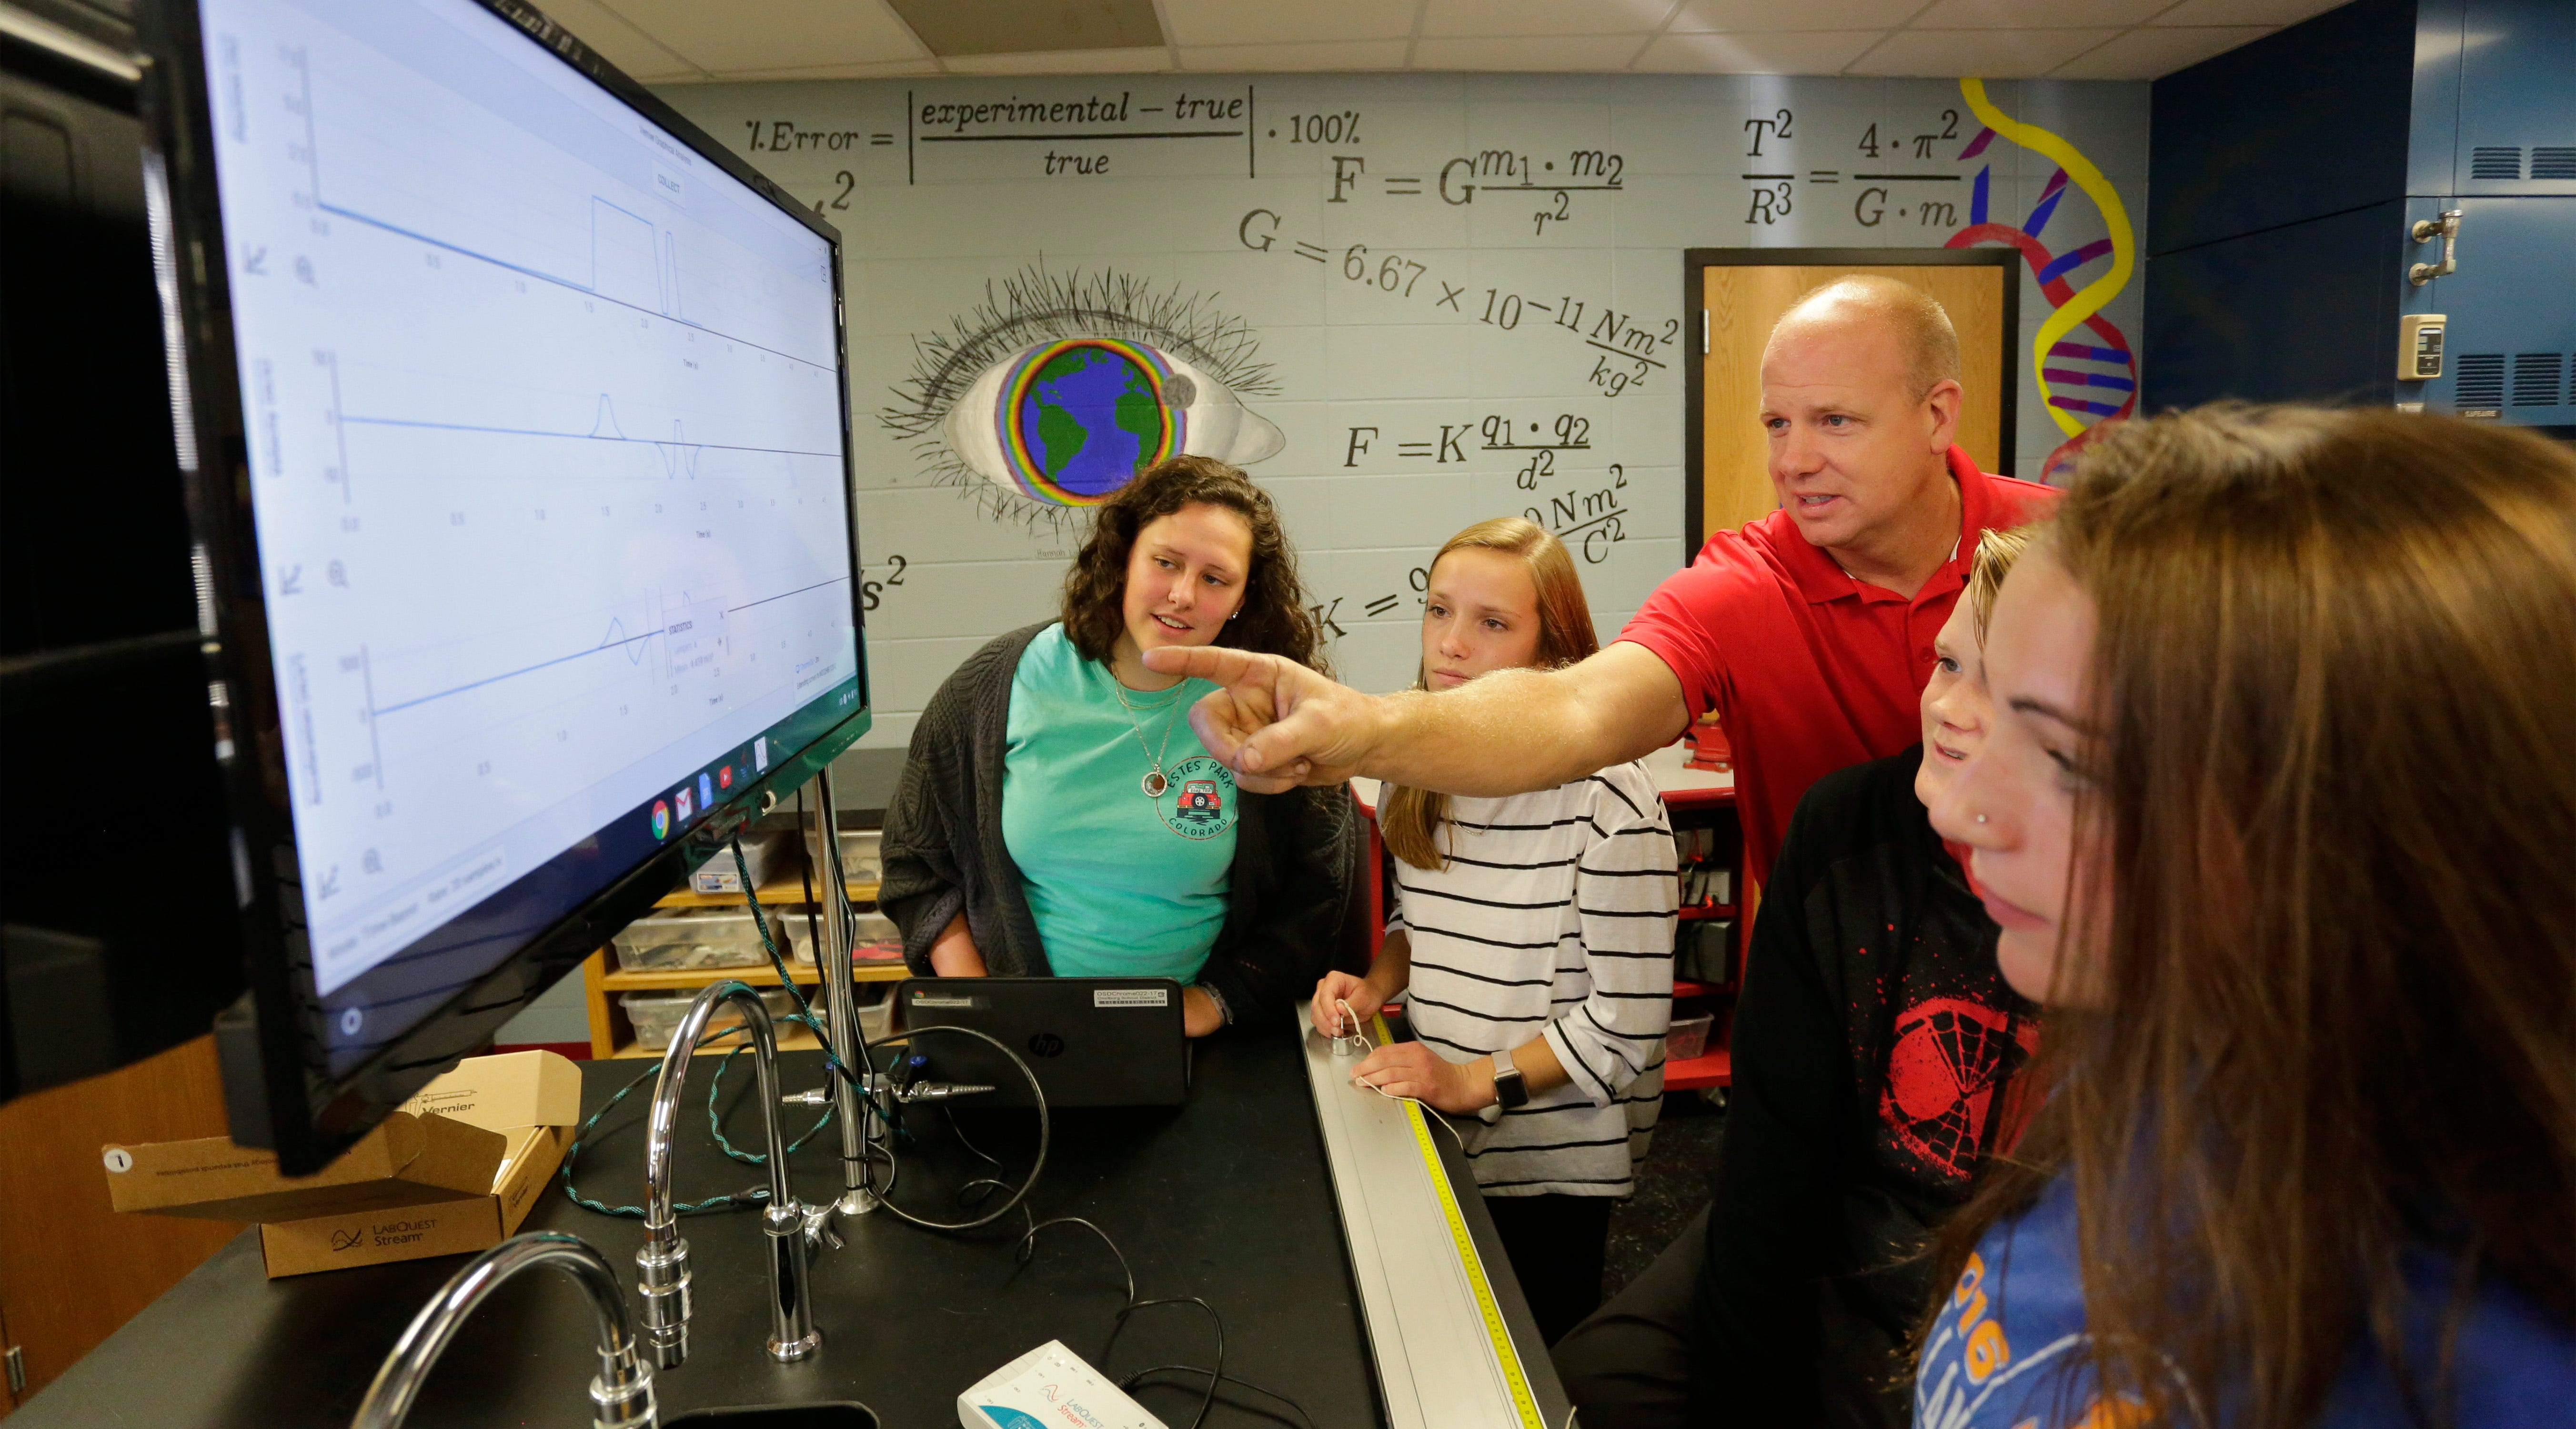 Students listen as physics teacher Terry Hendrikse, center, explains a test result during a junior-level physics class at Oostburg High School Wednesday, Sept. 25, 2019.